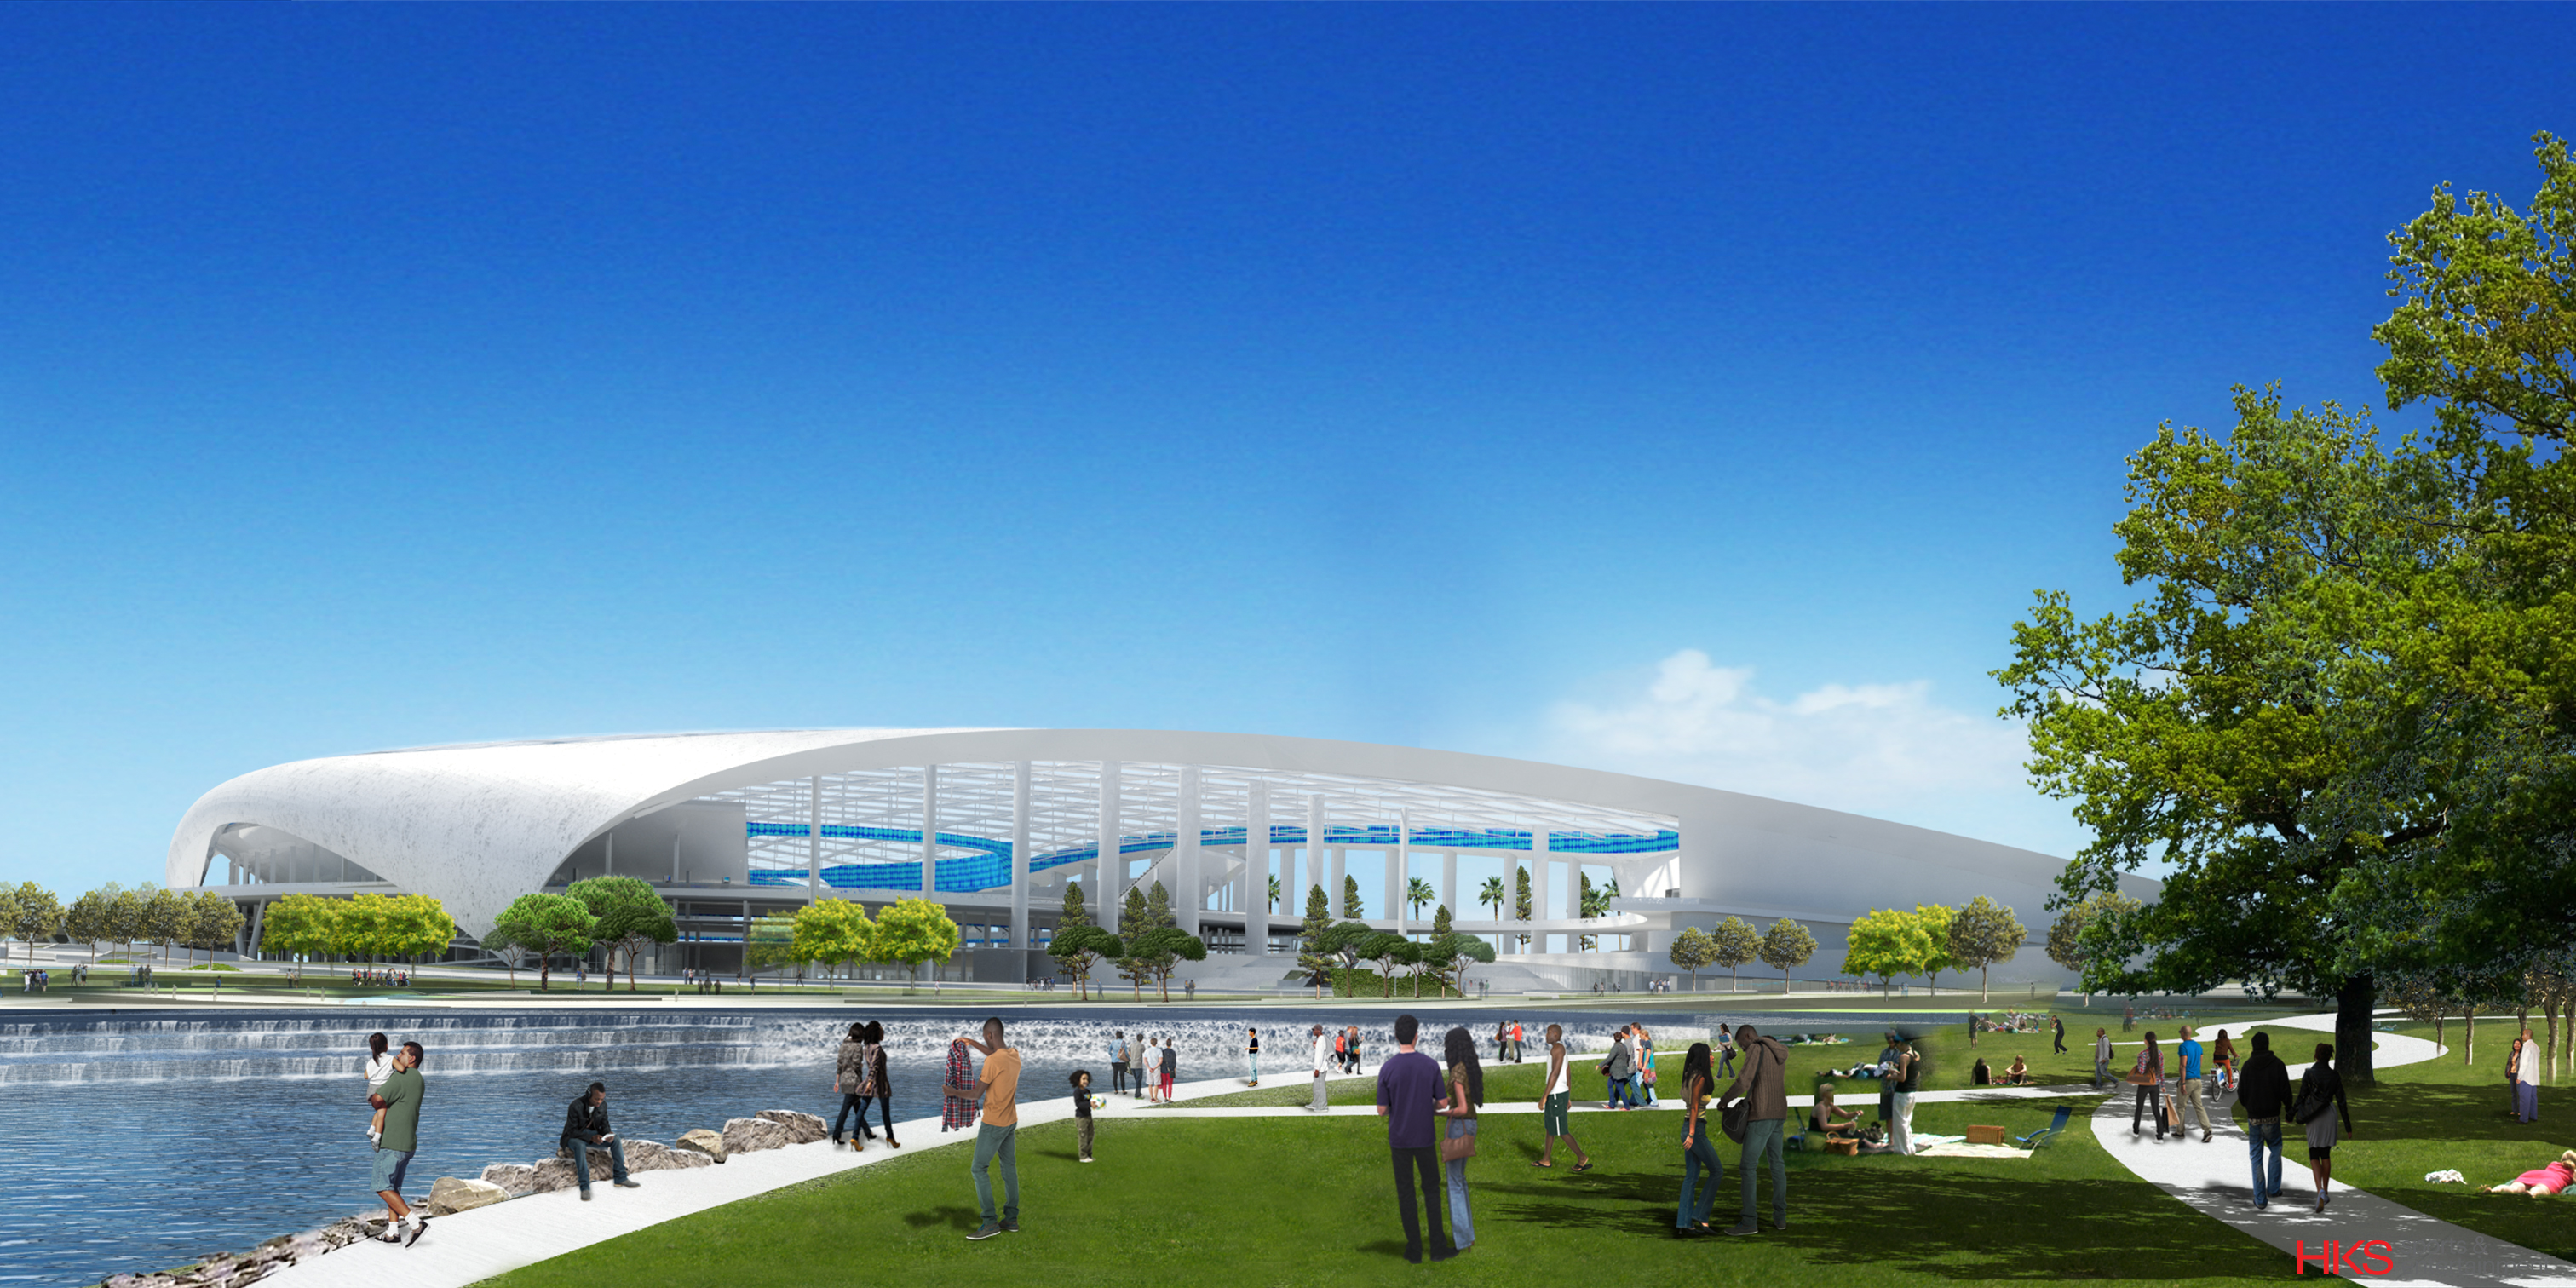 new la rams stadium in inglewood to be world s most expensive cnn style cnn com